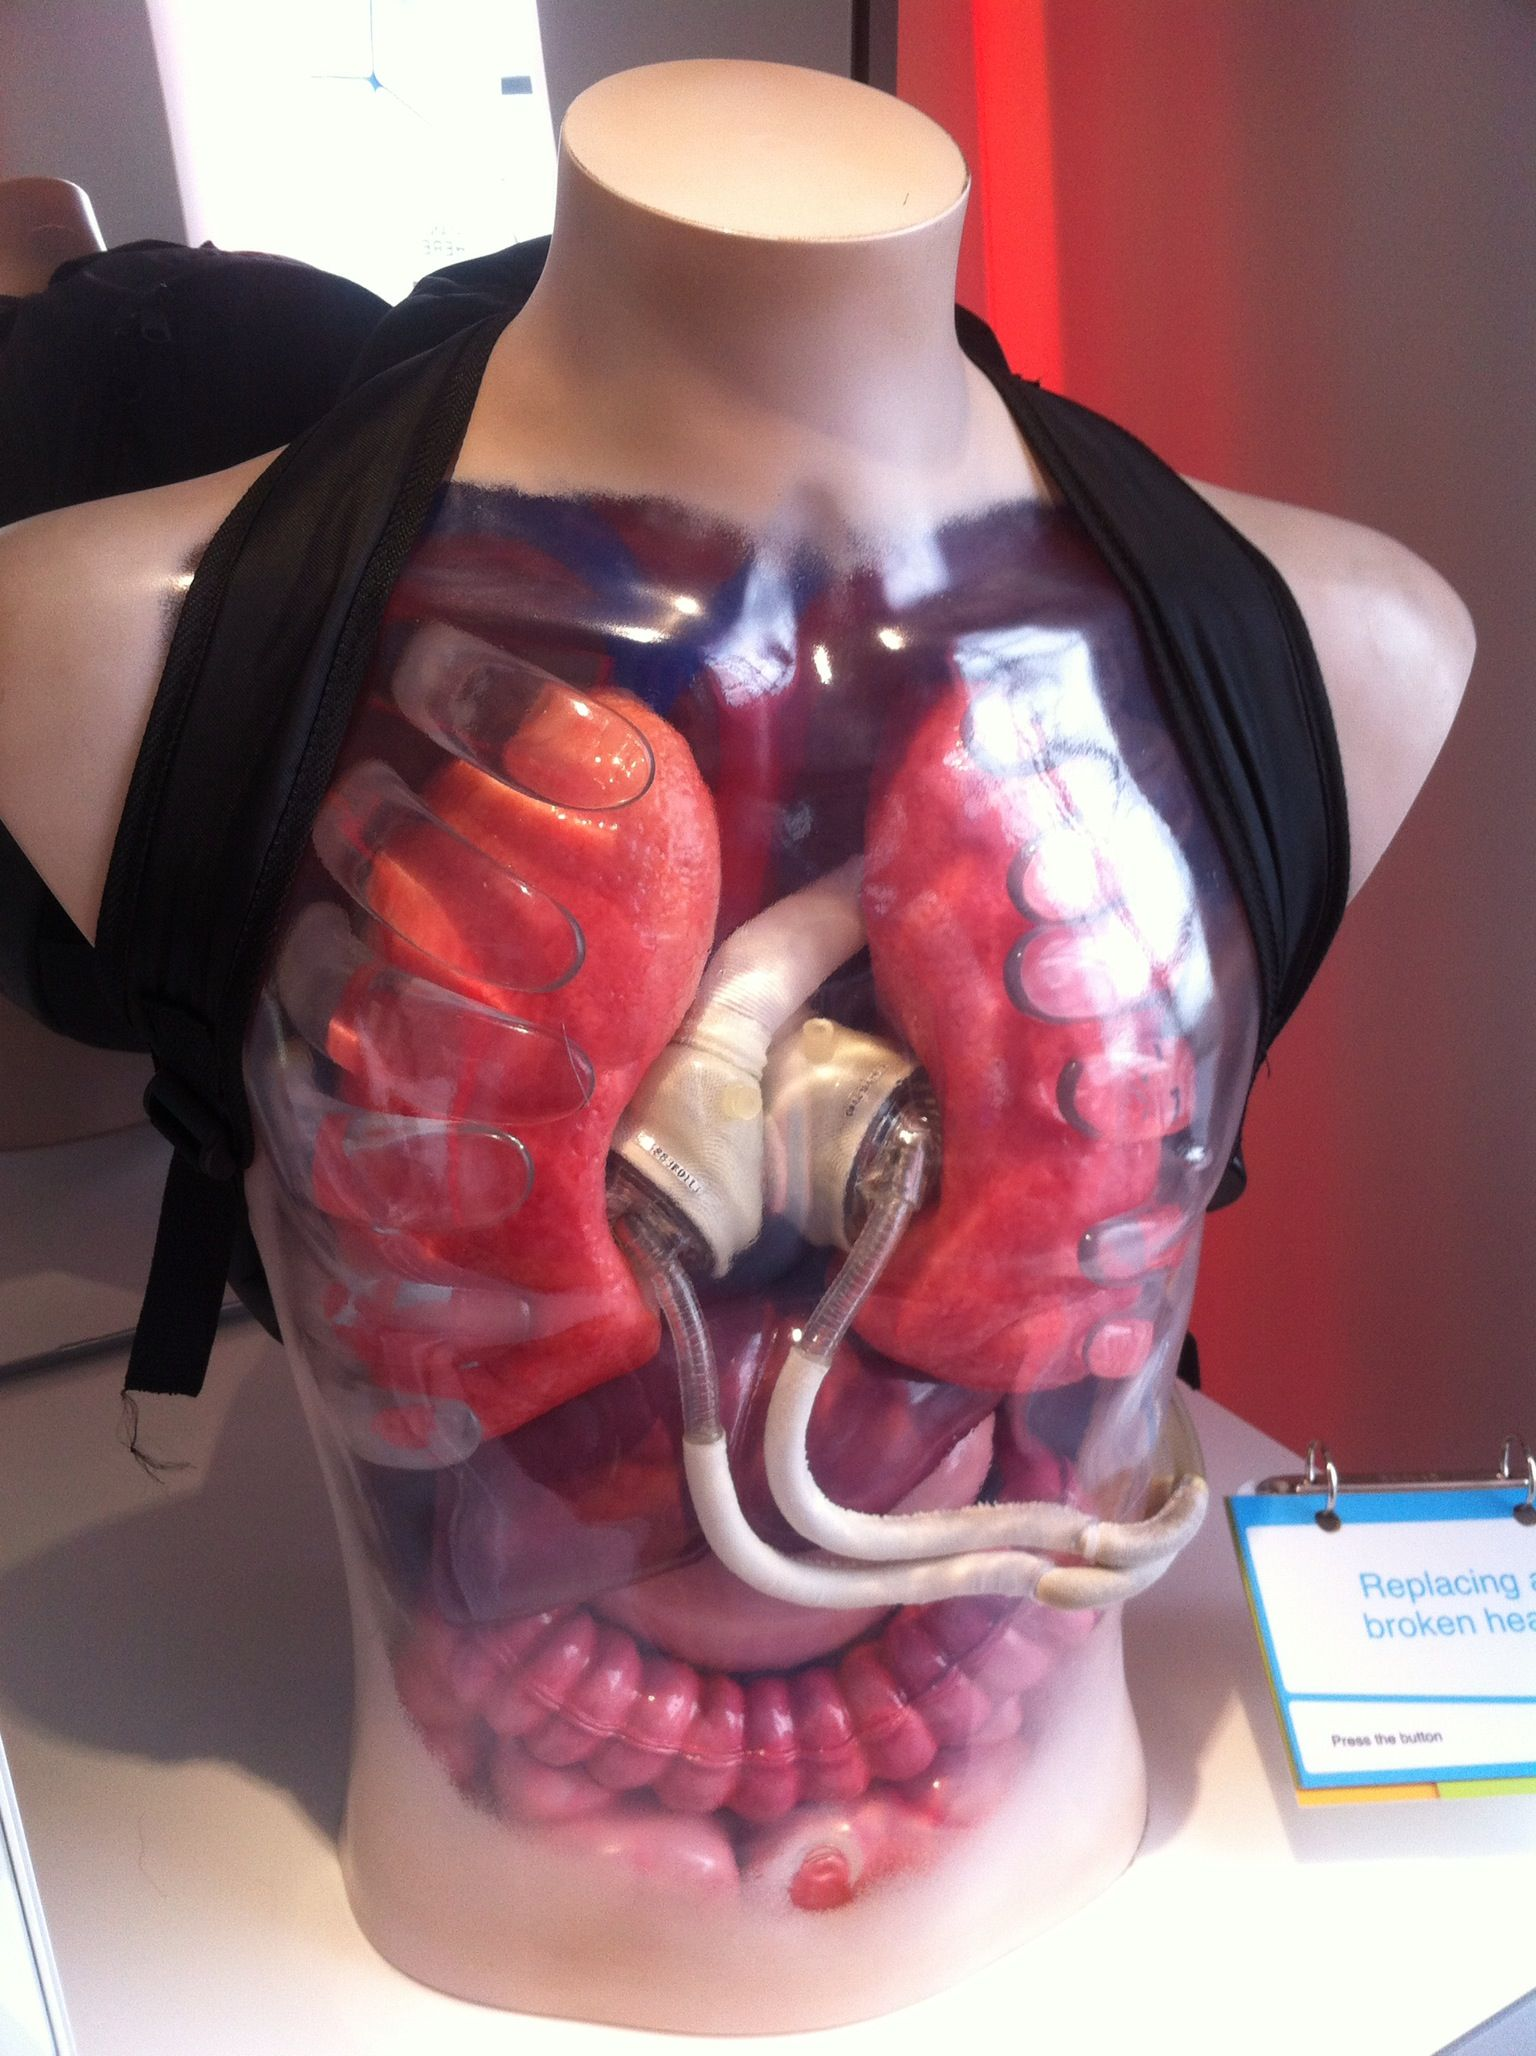 #ScienceSnaps 80: Total Artificial Heart. Photo credit: Eleanor Schyma Location: Glasgow Science Centre